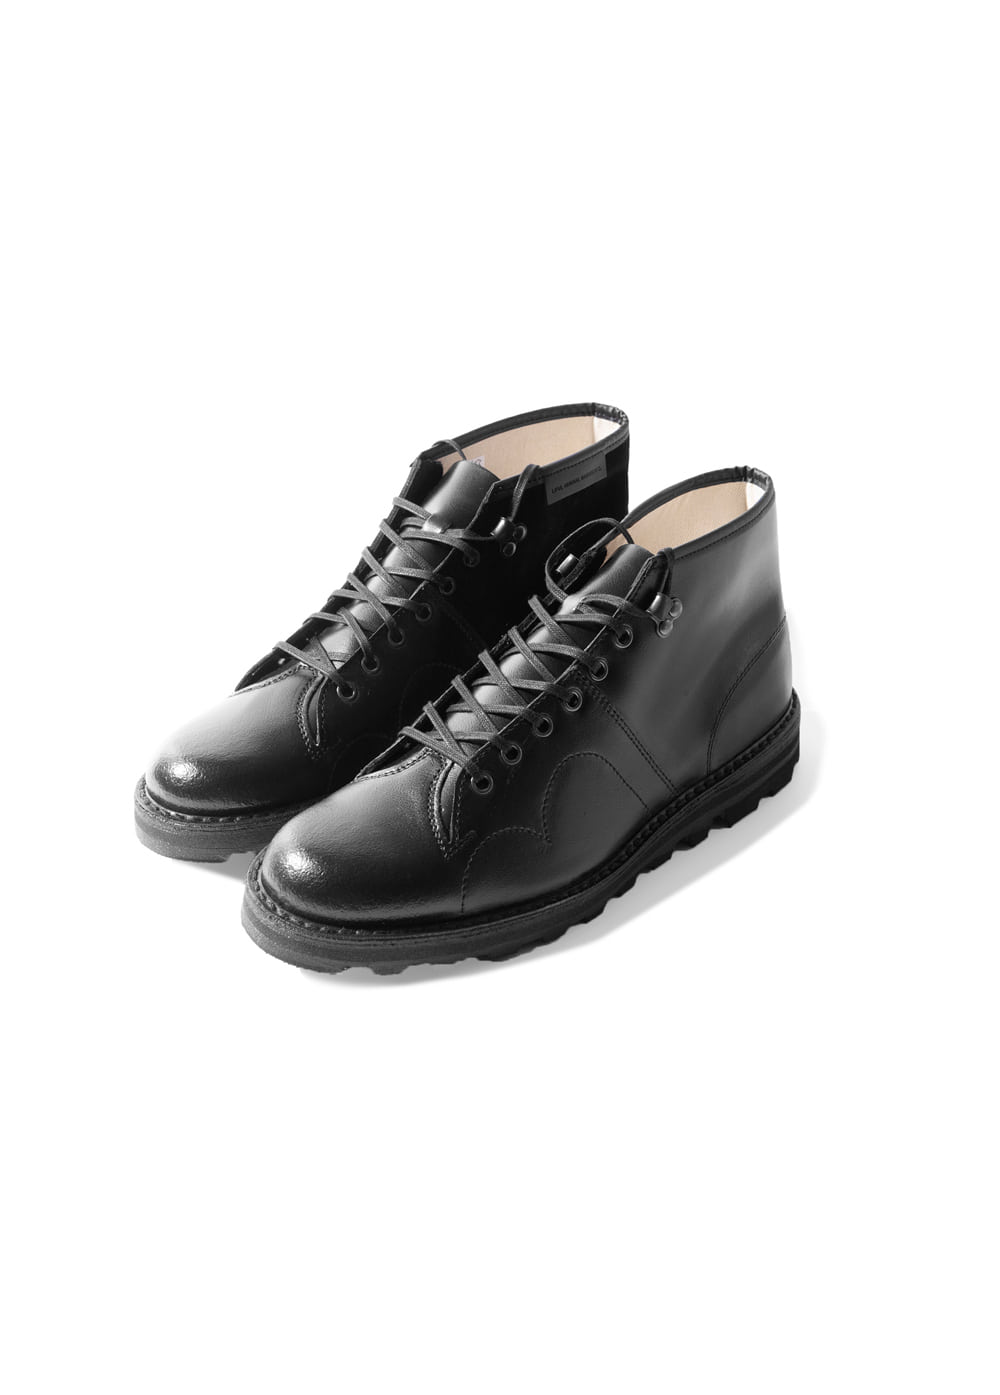 LIFUL x REPRODUCTION OF FOUND CZECHO SLOVAKIA MILITARY BOOTS black